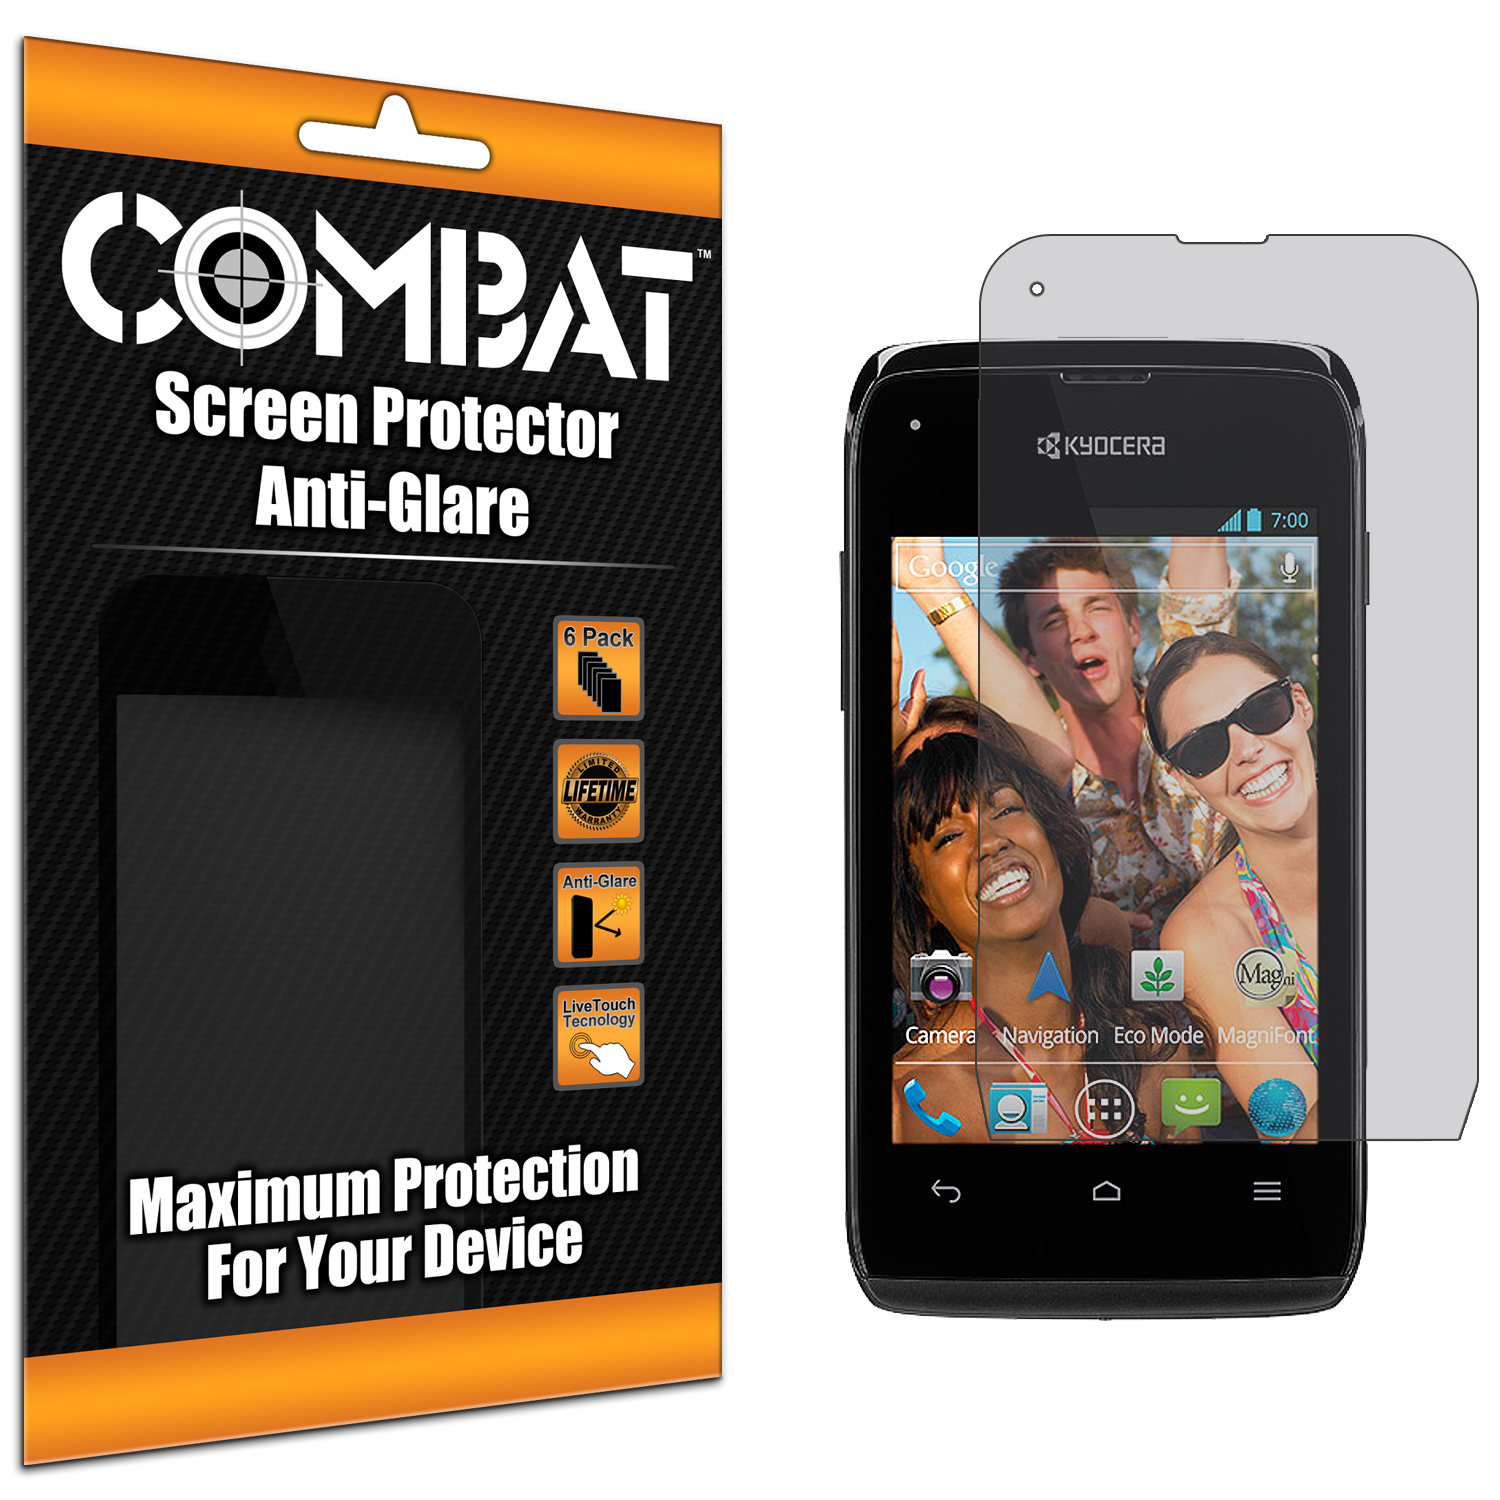 Kyocera Event C5133 Combat 6 Pack Anti-Glare Matte Screen Protector